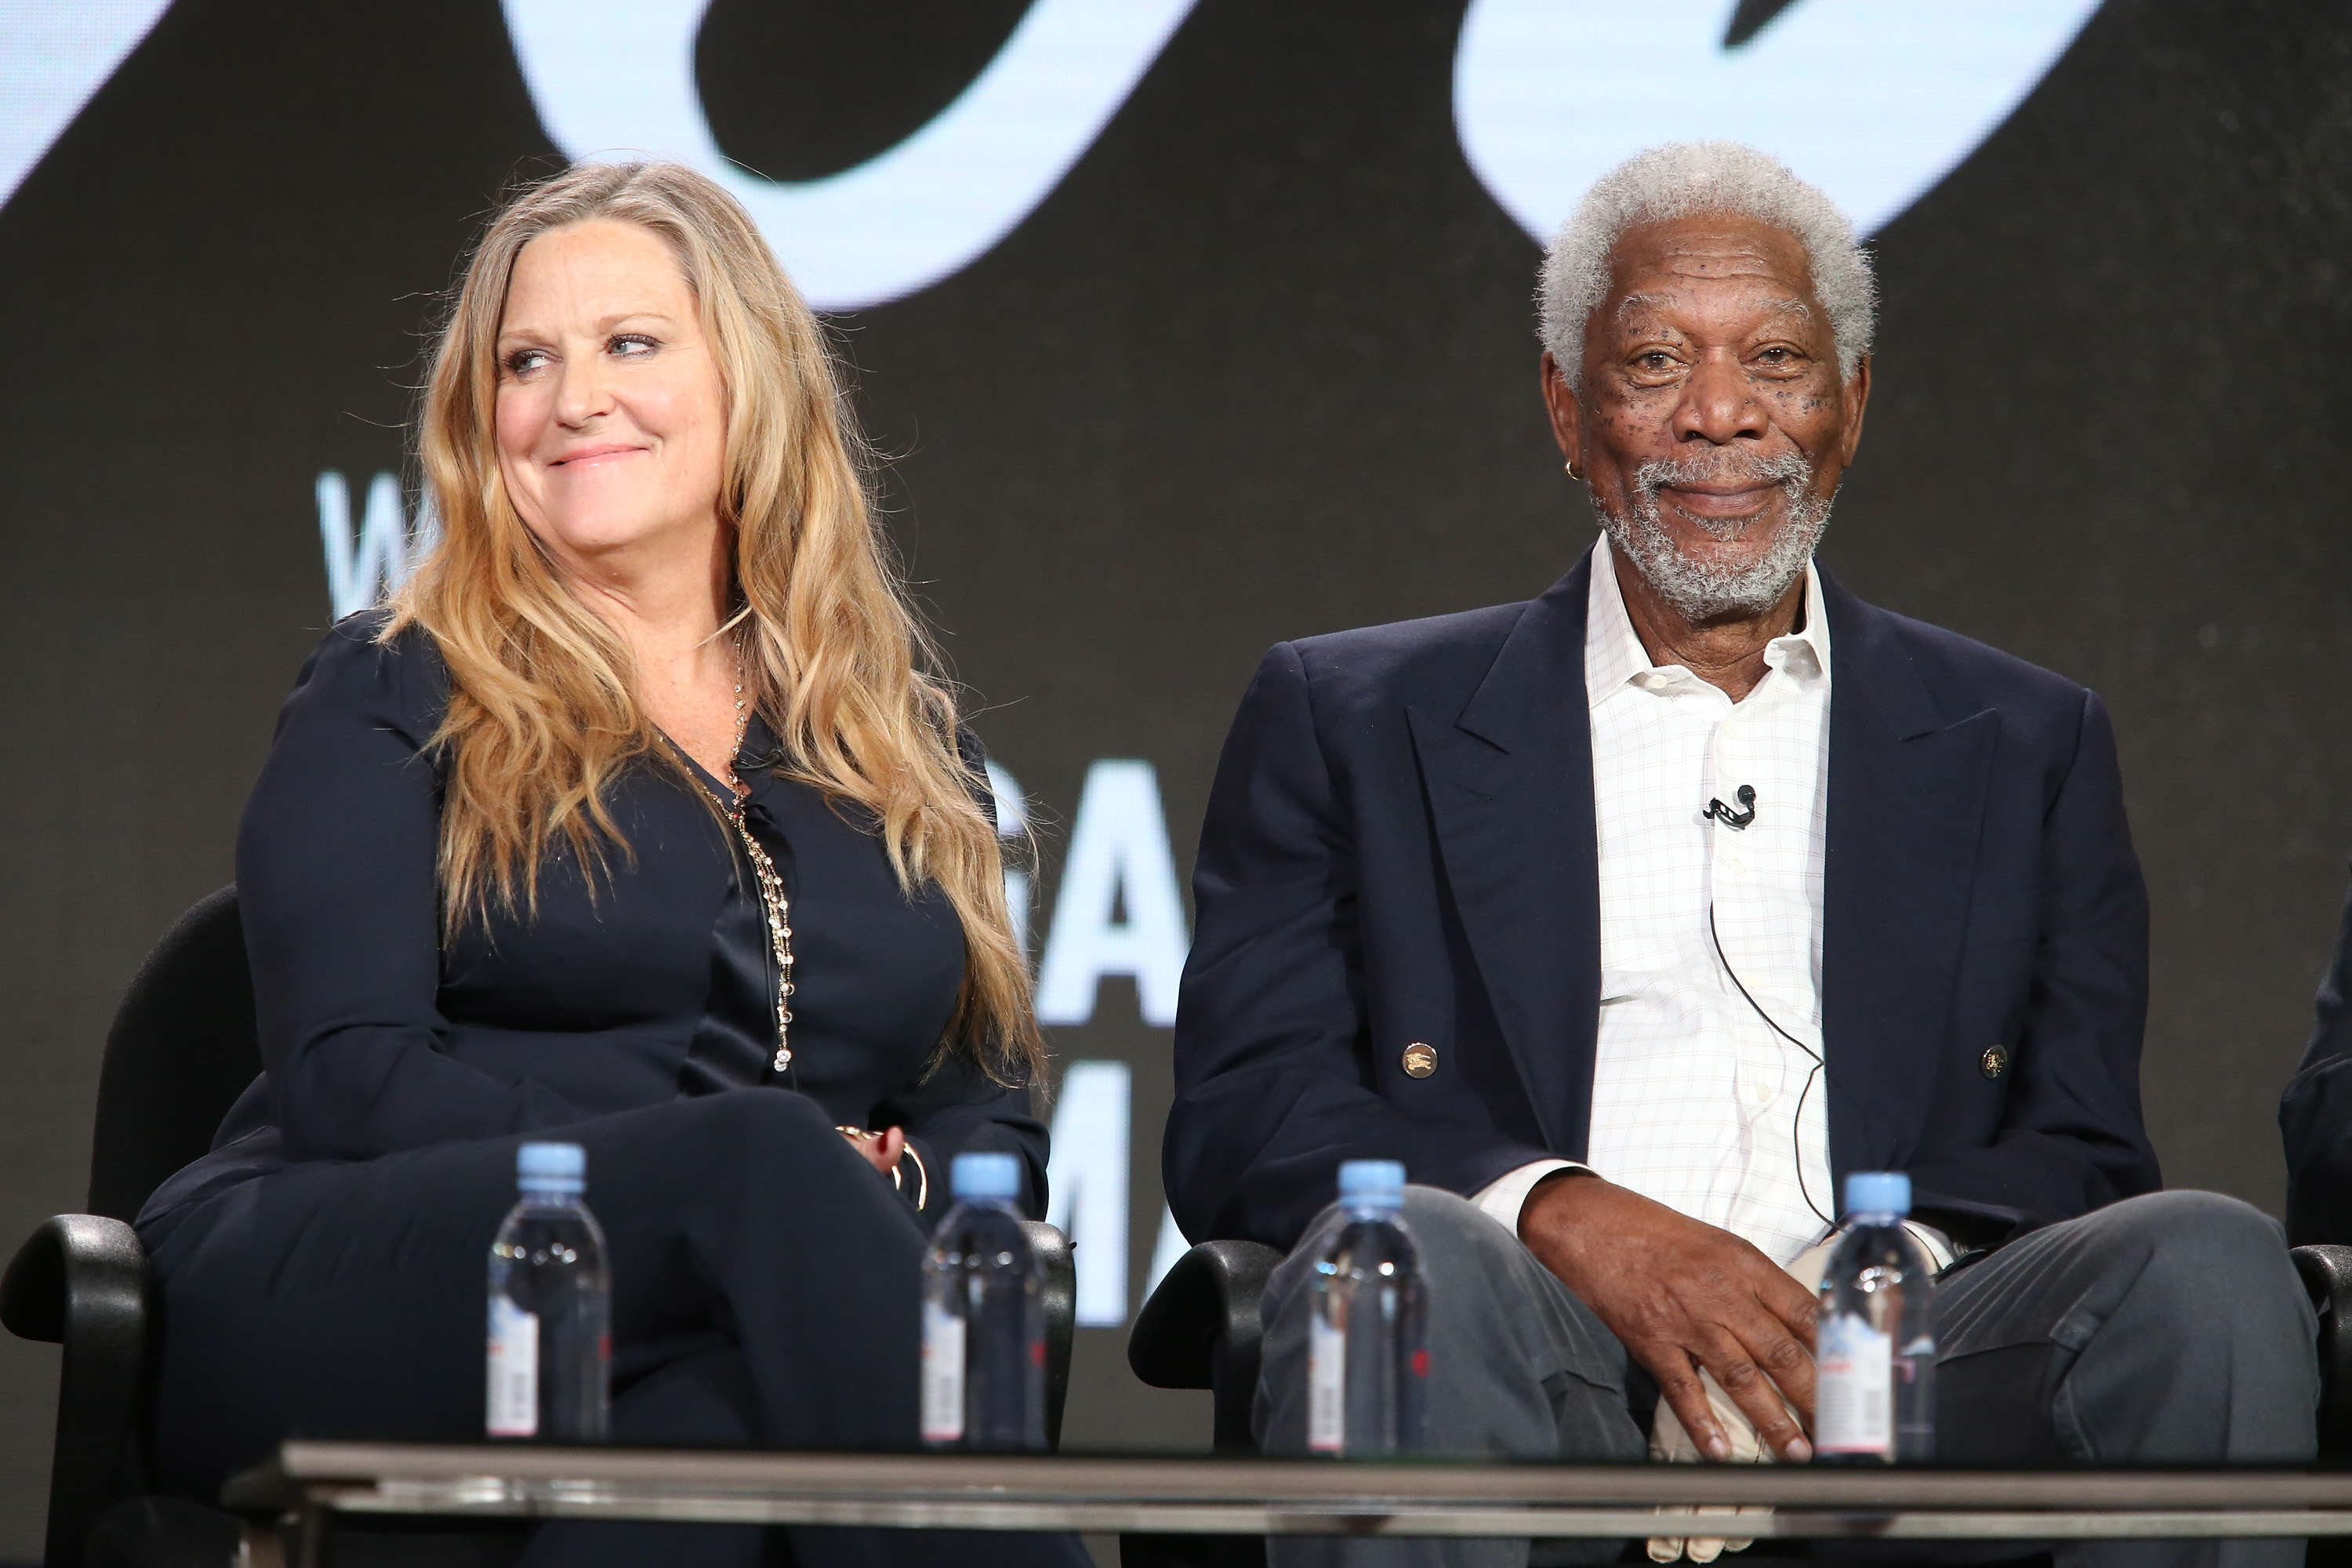 Morgan Freeman Sets Record Straight, Hes Sexist Not Misogynistic GettyImages 503700398